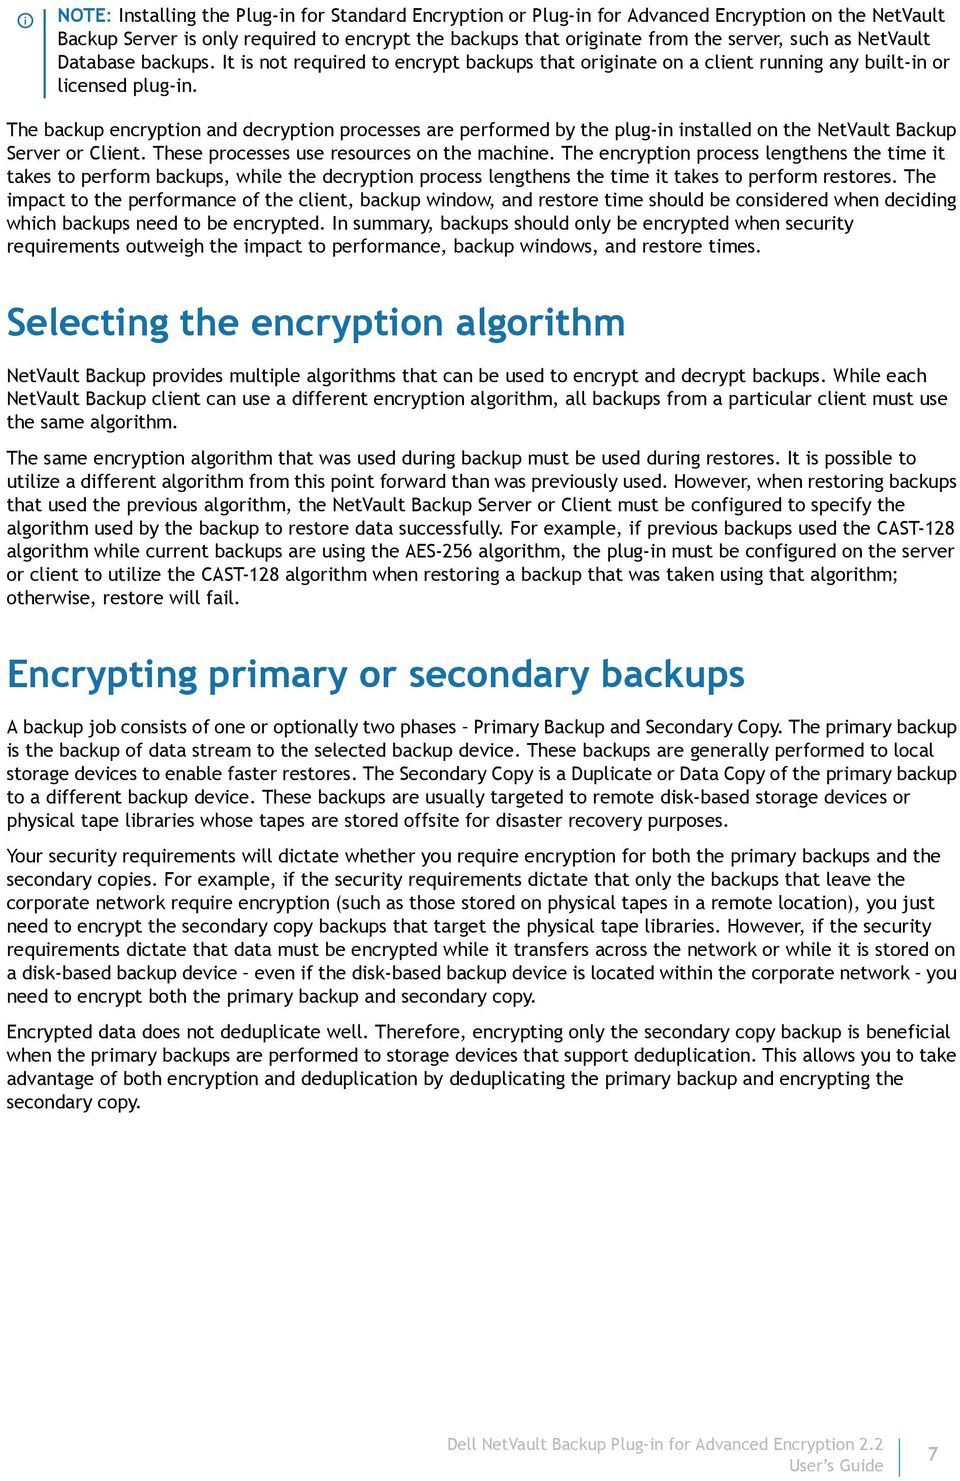 The backup encryption and decryption processes are performed by the plug-in installed on the Backup Server or Client. These processes use resources on the machine.